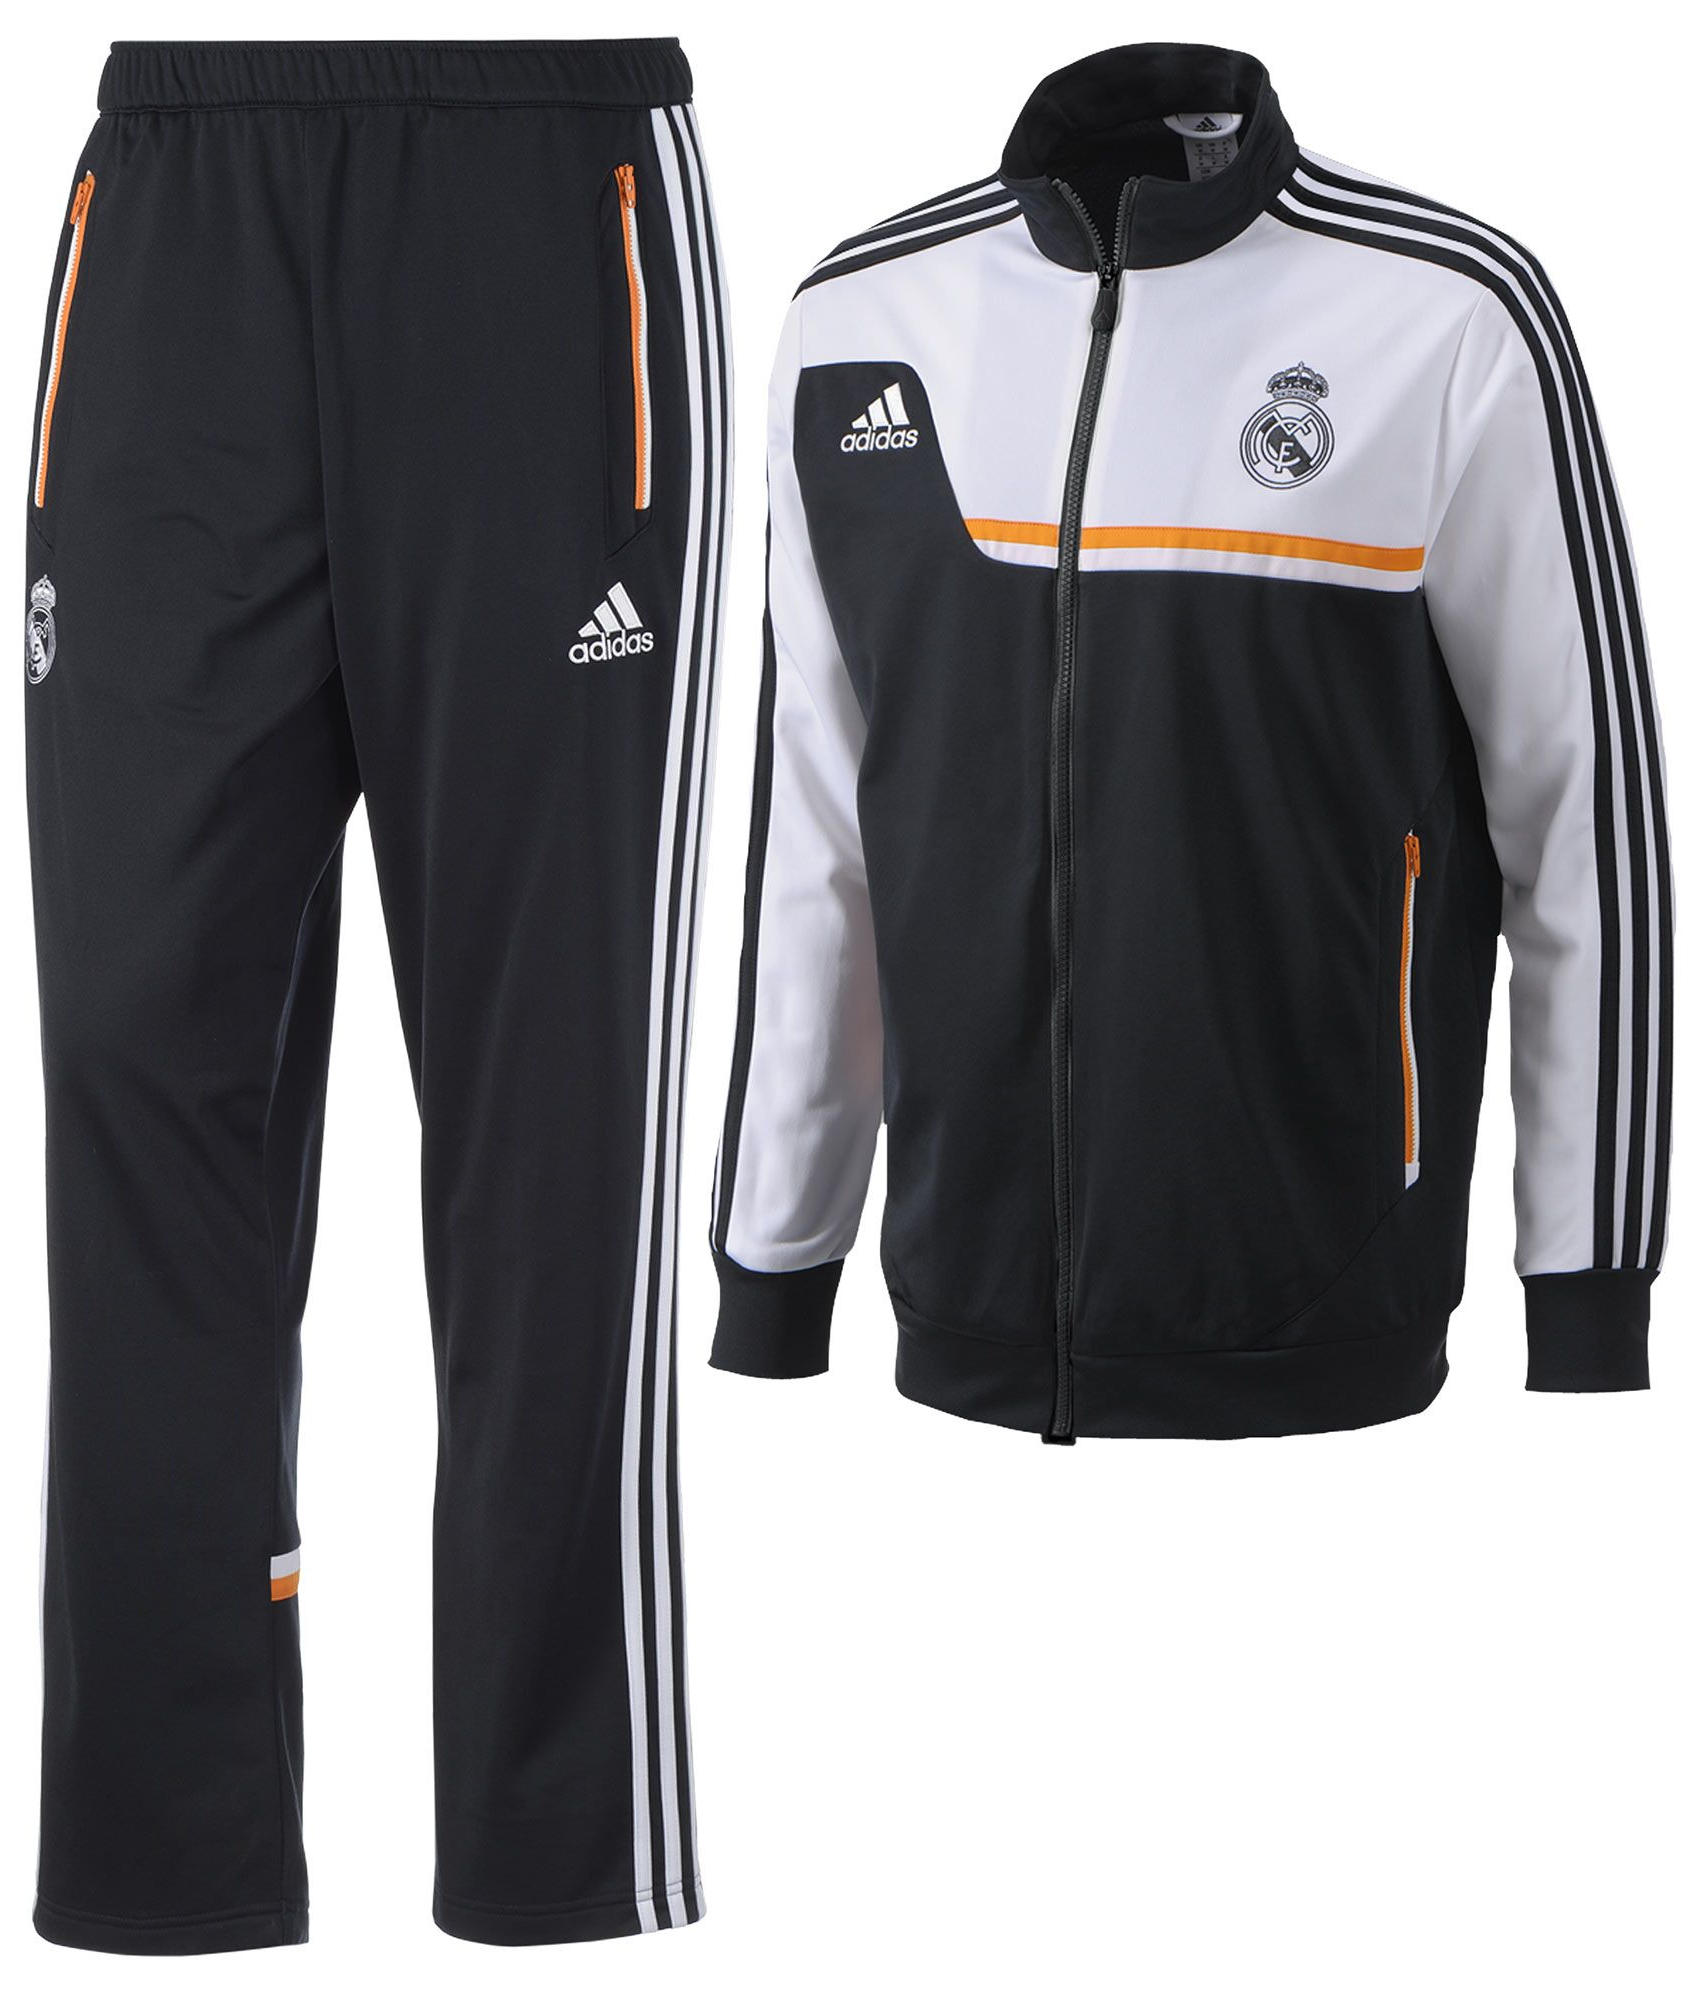 pes suit real madrid adidas training trainingsanzug 2013. Black Bedroom Furniture Sets. Home Design Ideas